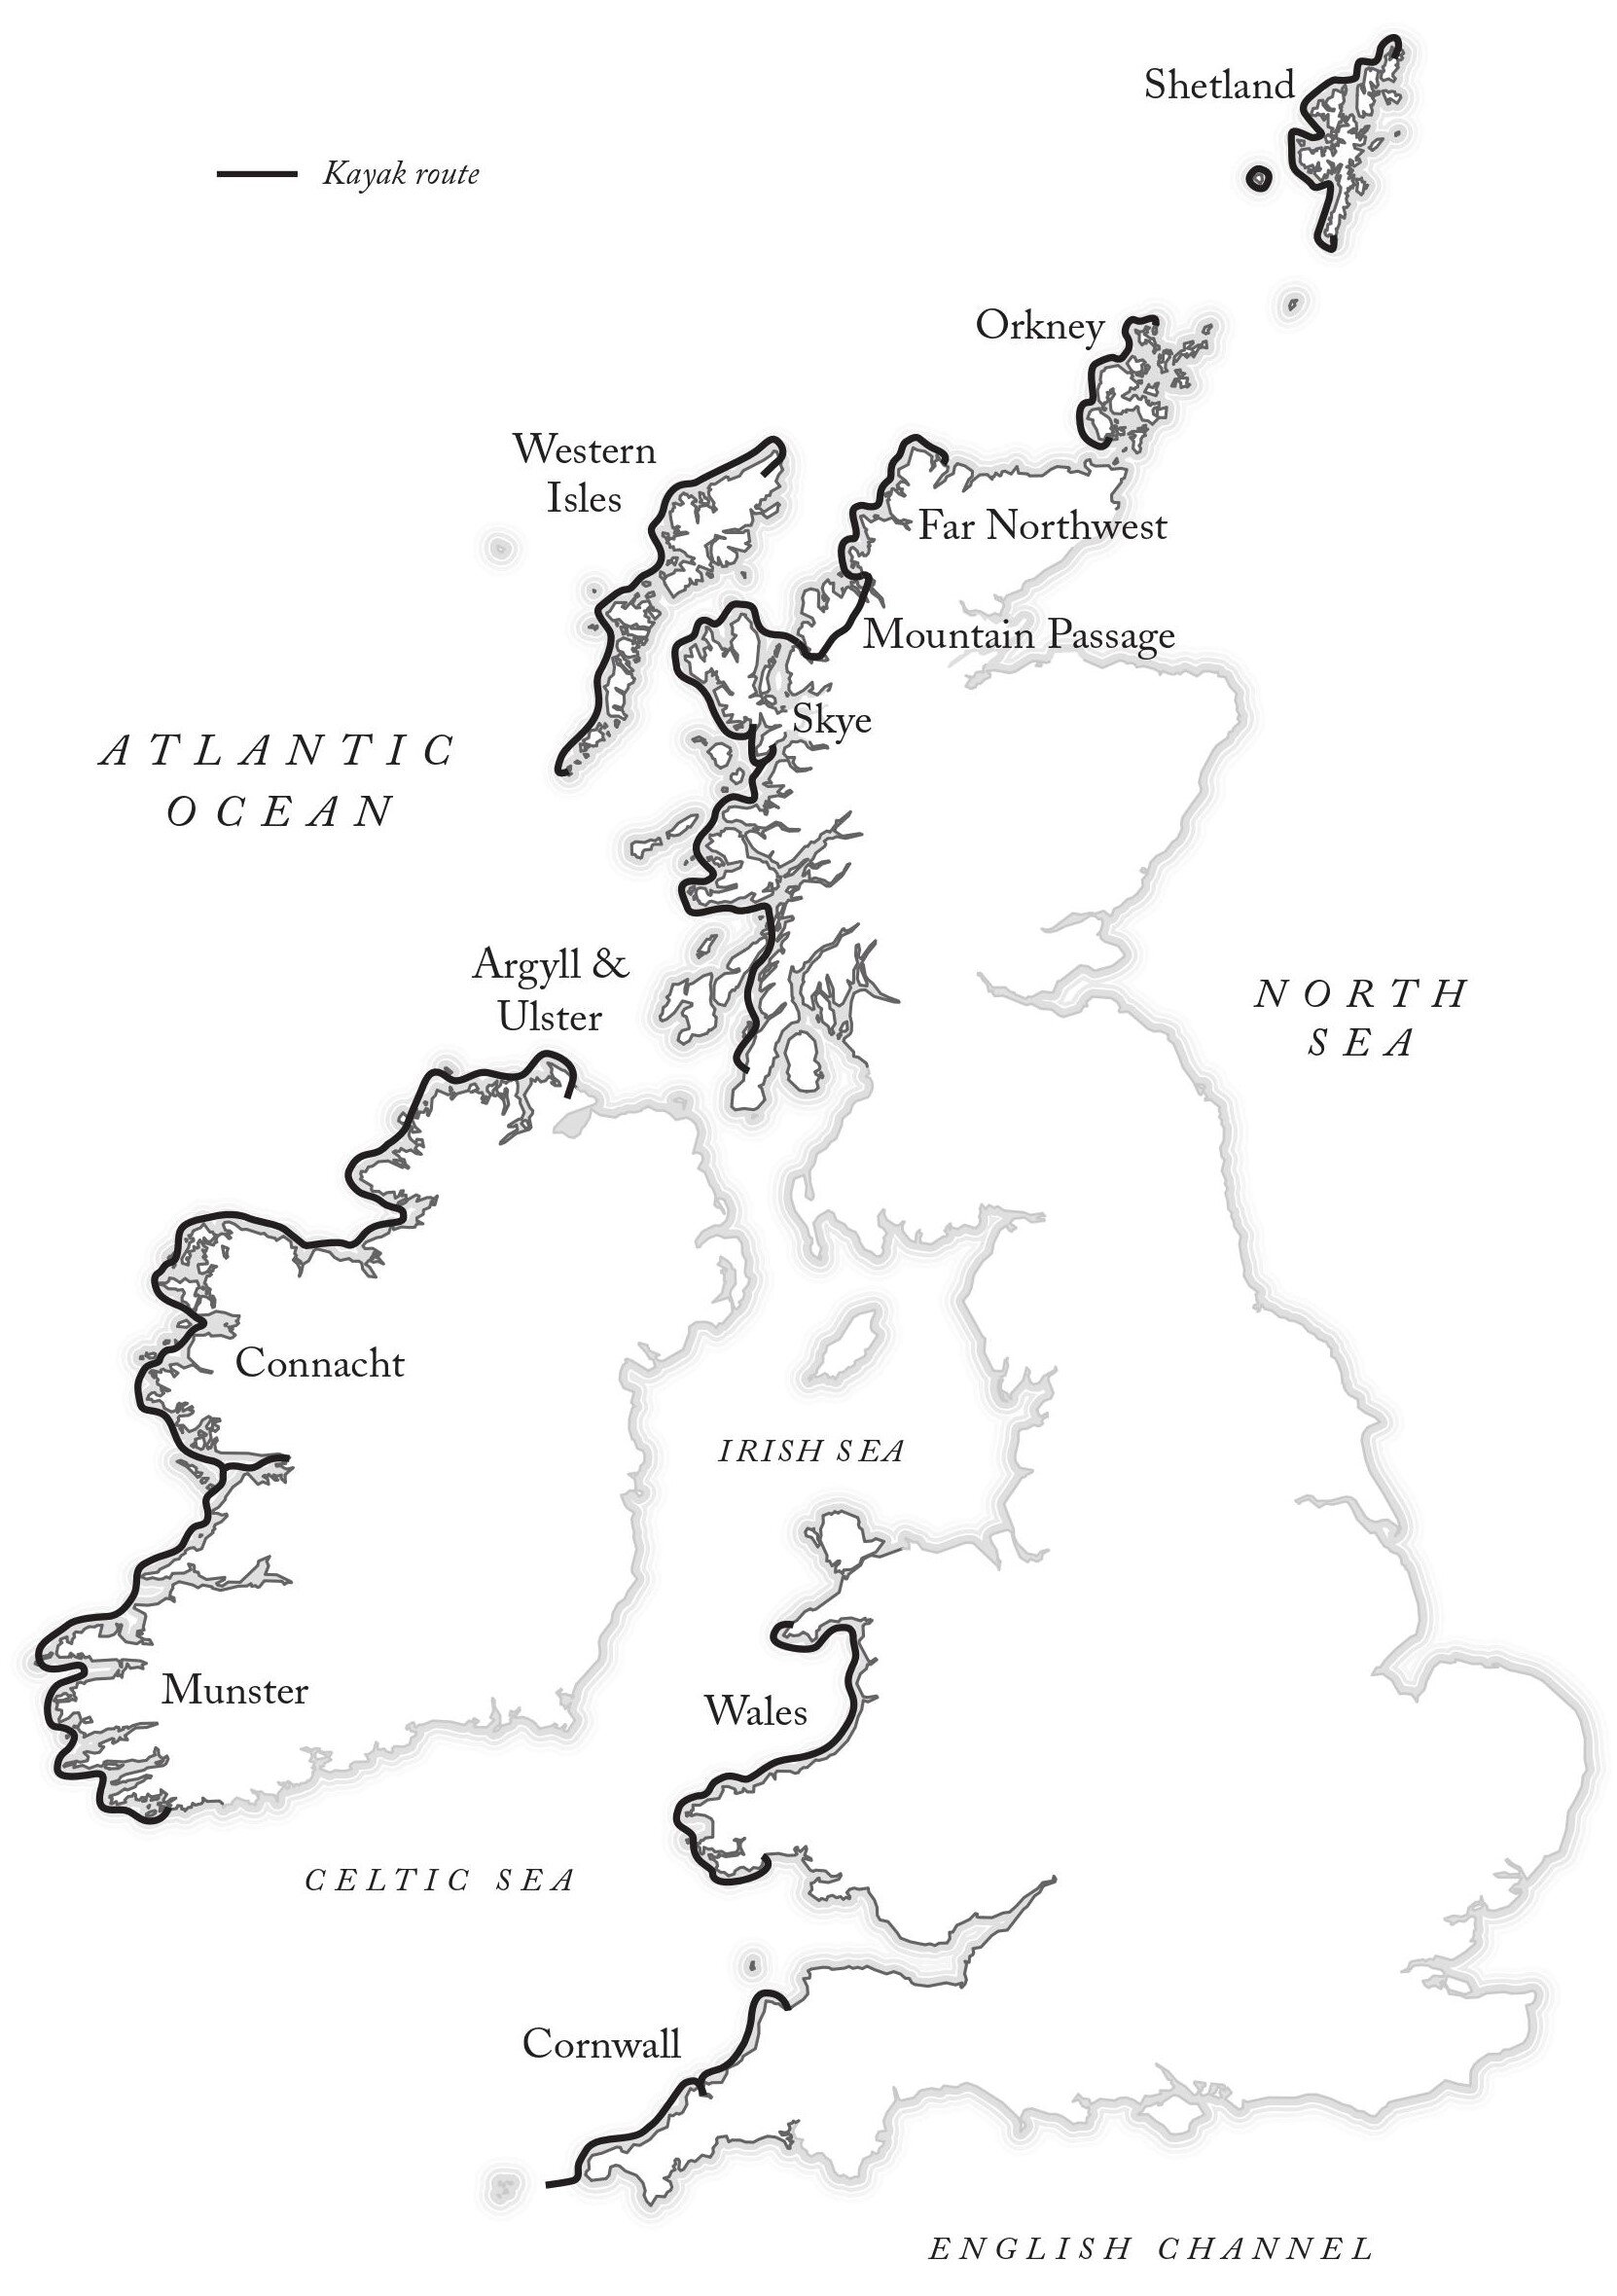 David Gange's route map from The Frayed Atlantic Edge